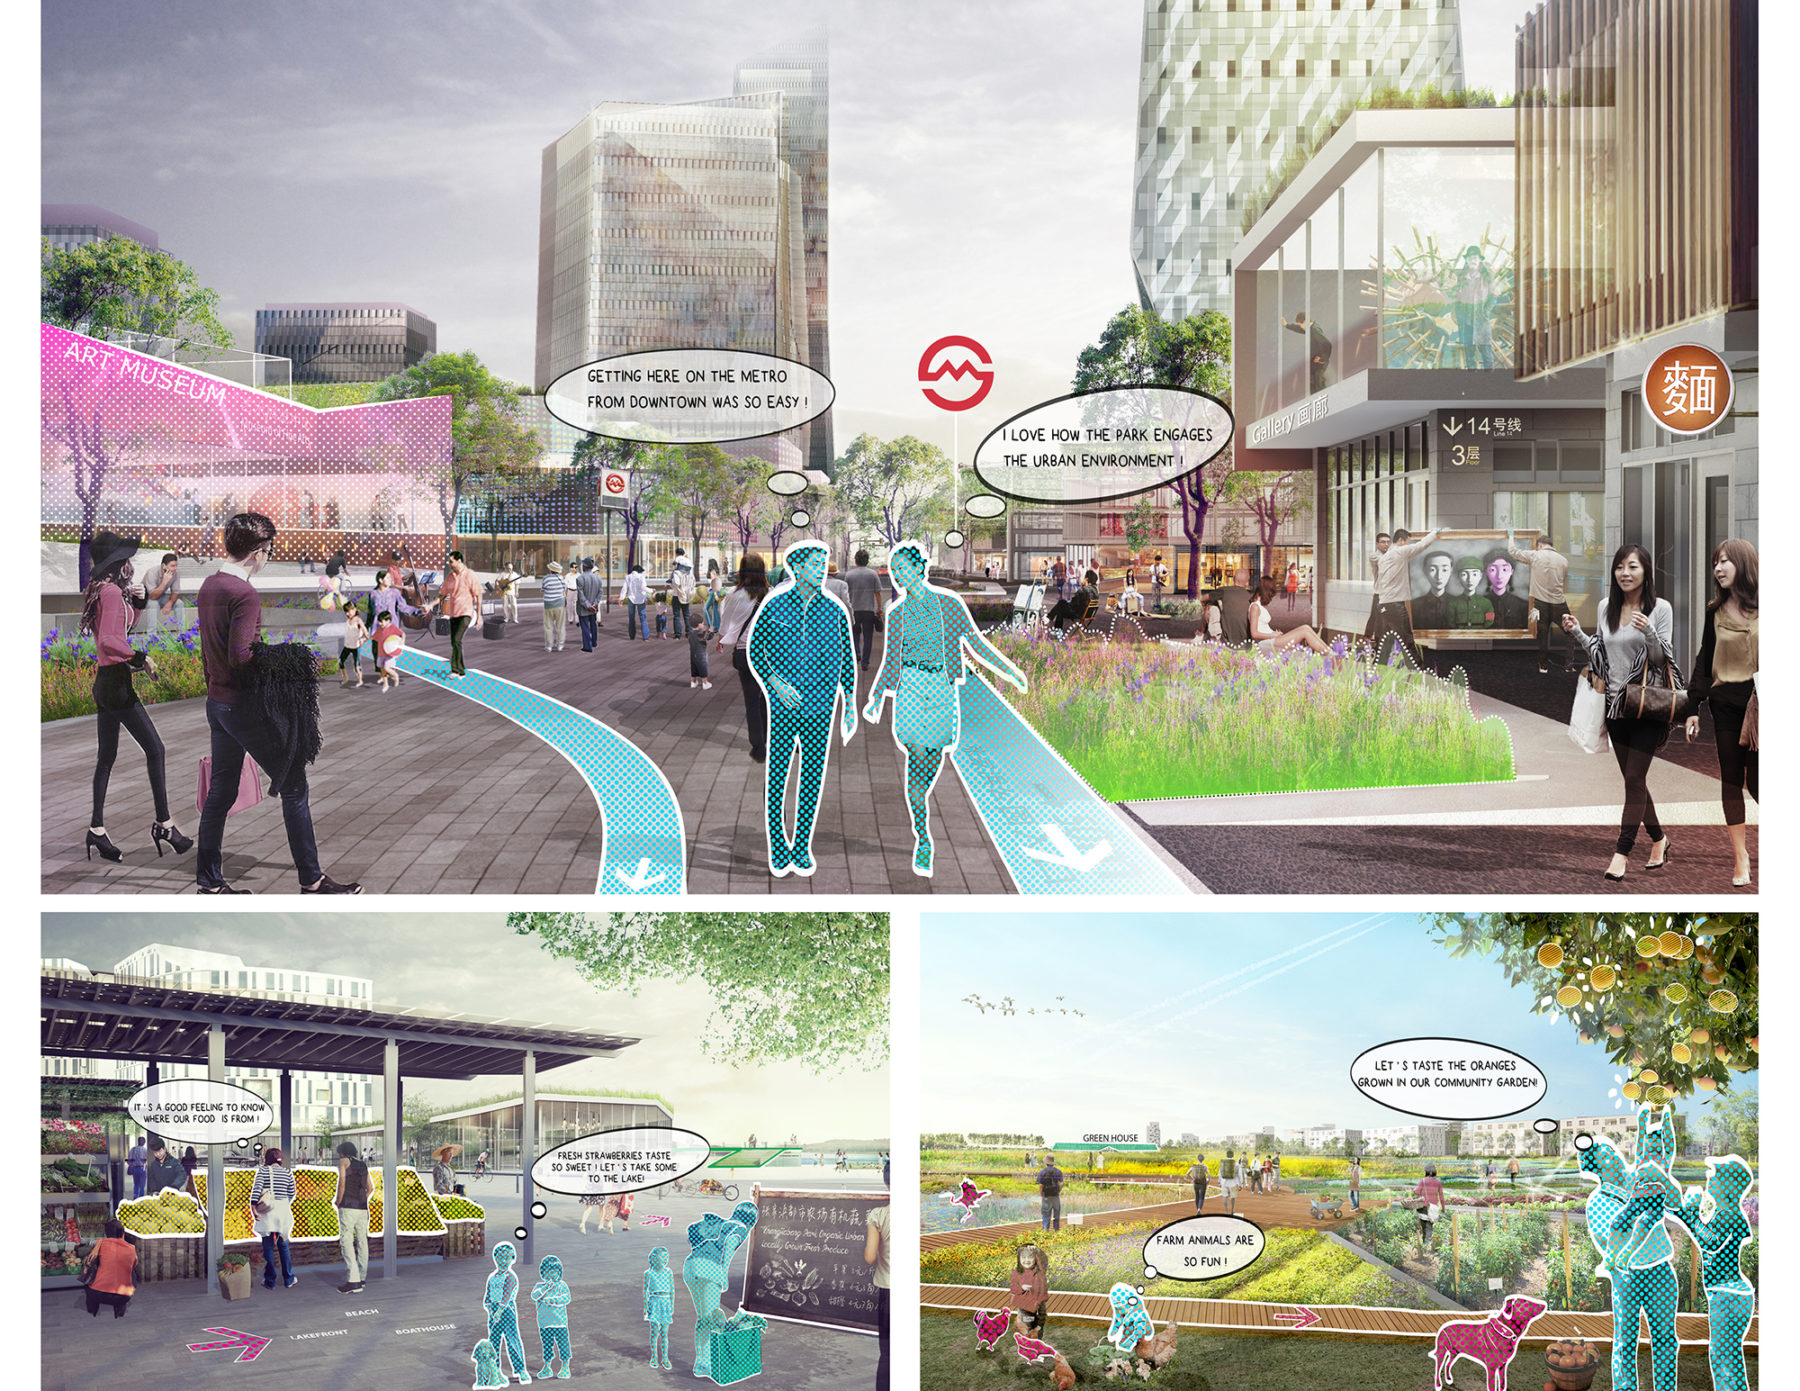 Trio of renderings: People gather in the plaza near the art museum (top); Peoples shop at a produce stand (bottom left); People enjoy the community garden (bottom right)